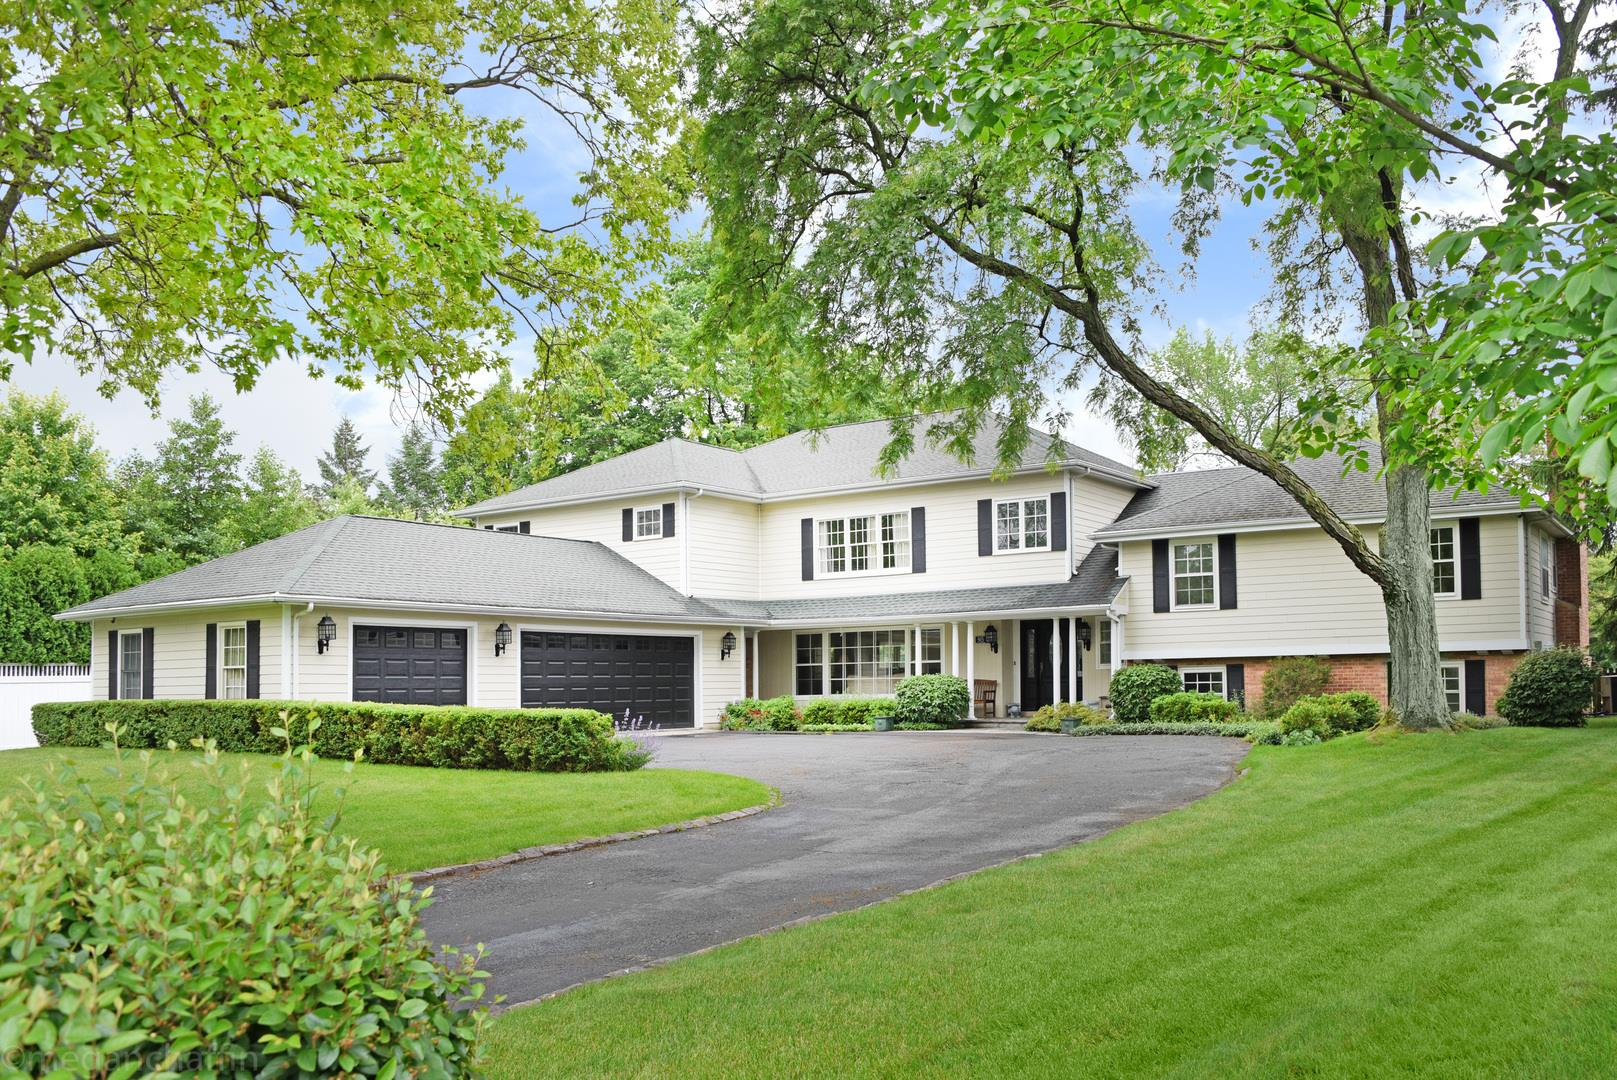 915 Pine Tree Lane, Winnetka, IL 60093 - #: 10607647